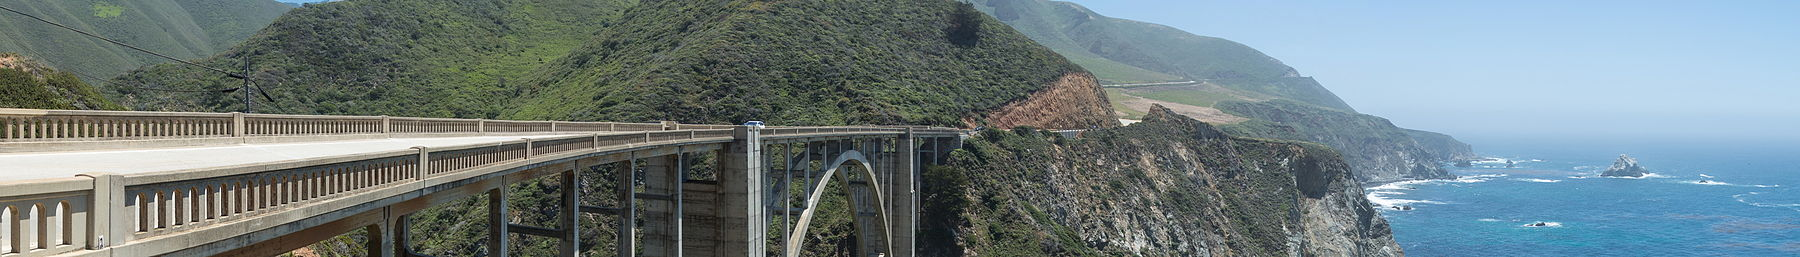 Monterey county banner Bixby Creek Bridge.jpg